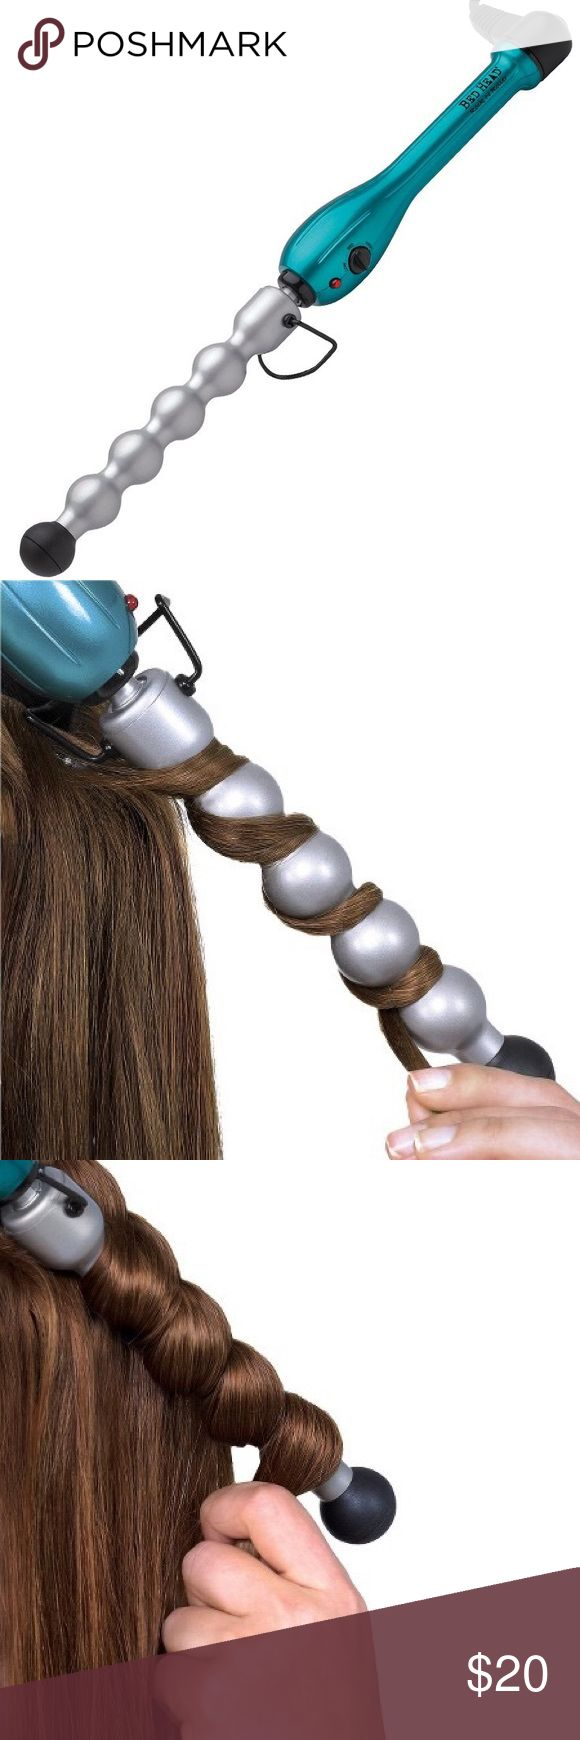 Bed Head Rock-n- Roller 2-in-1 Bubble Curling Wand NWOT! I bought this curling wand thinking I would use it but I have never used it and my hair is too short to even curl it anymore. It did come with a glove which I have somewhere but I can't seem to find it. If I find it I will add it with the wand! Please let me know if you have any questions!  ⚡️ fast shipper: same day or next day  top-rated seller  30% off with bundles BedHead Accessories Hair Accessories